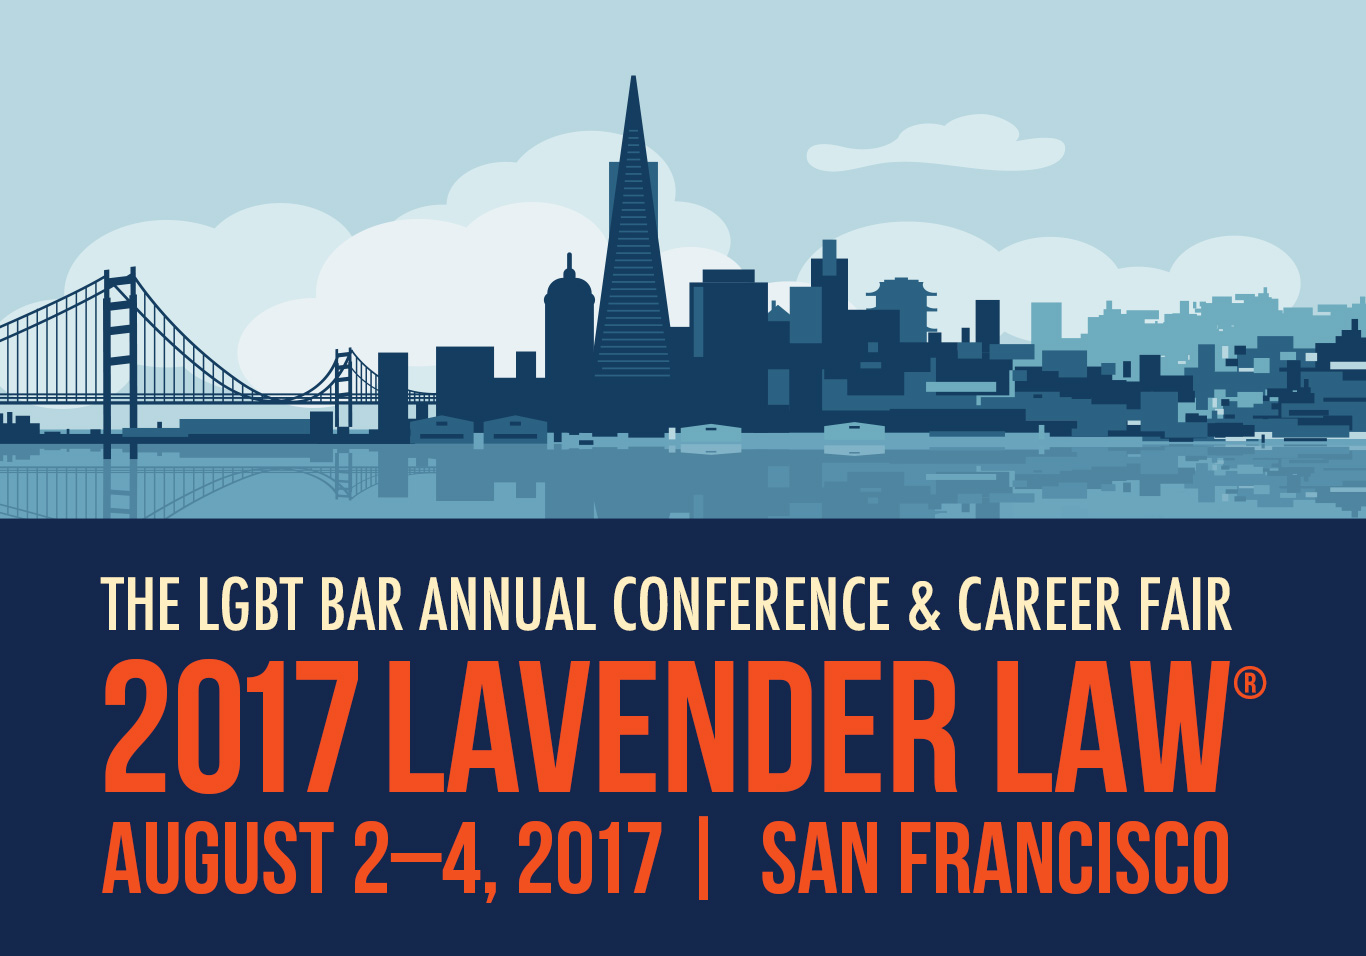 THE LGBT BAR PRESENTS: 29TH ANNUAL CONFERENCE & CAREER FAIR: August 2-4 2017